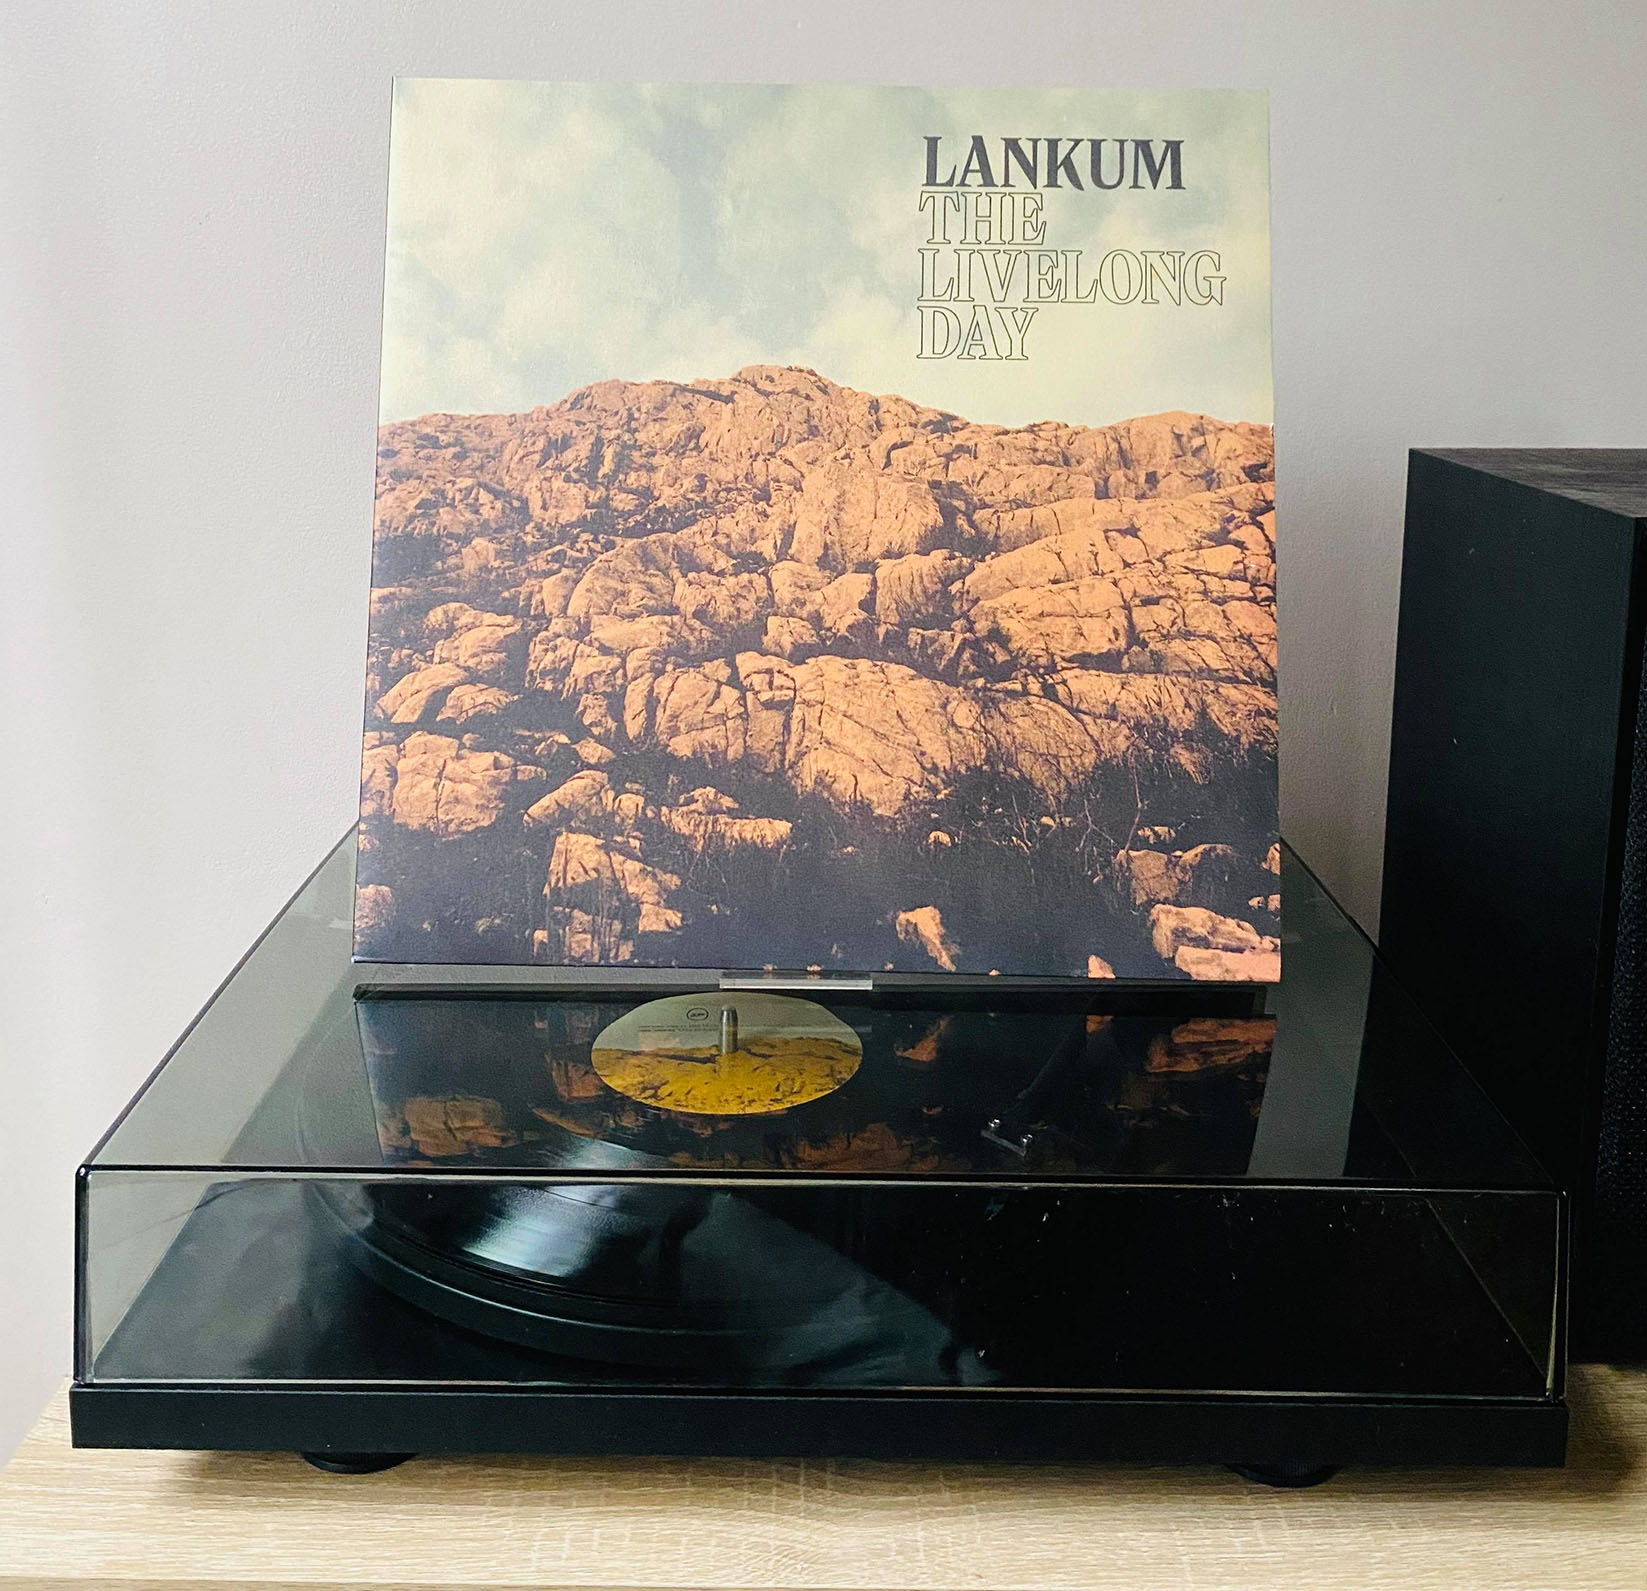 ON THE TURNTABLE: Lankum - The Livelong Day